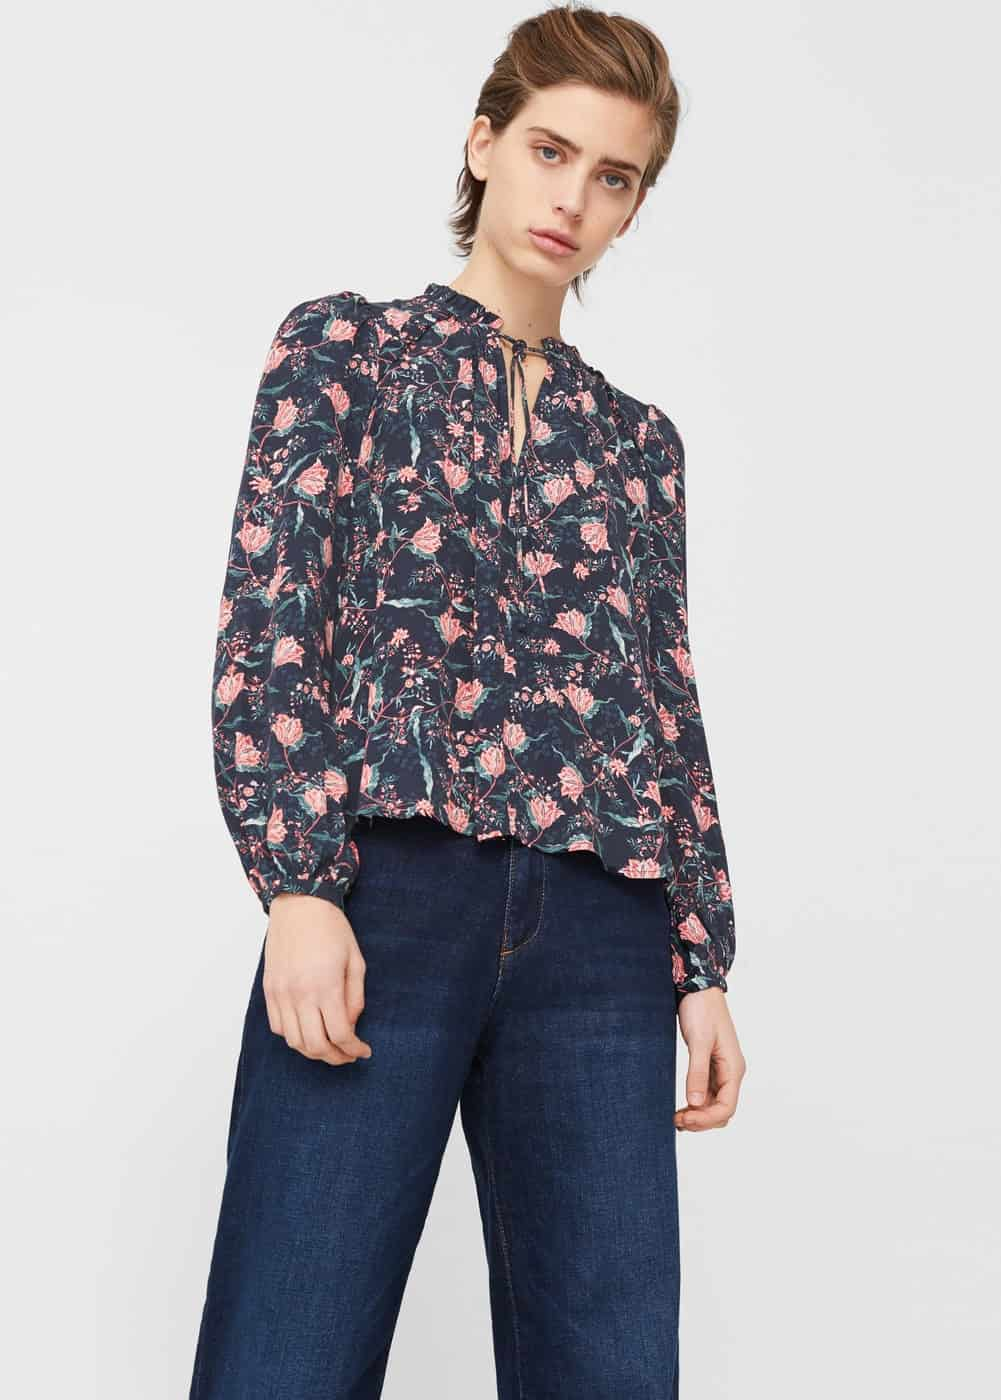 Floral print, loose-fitting blouse